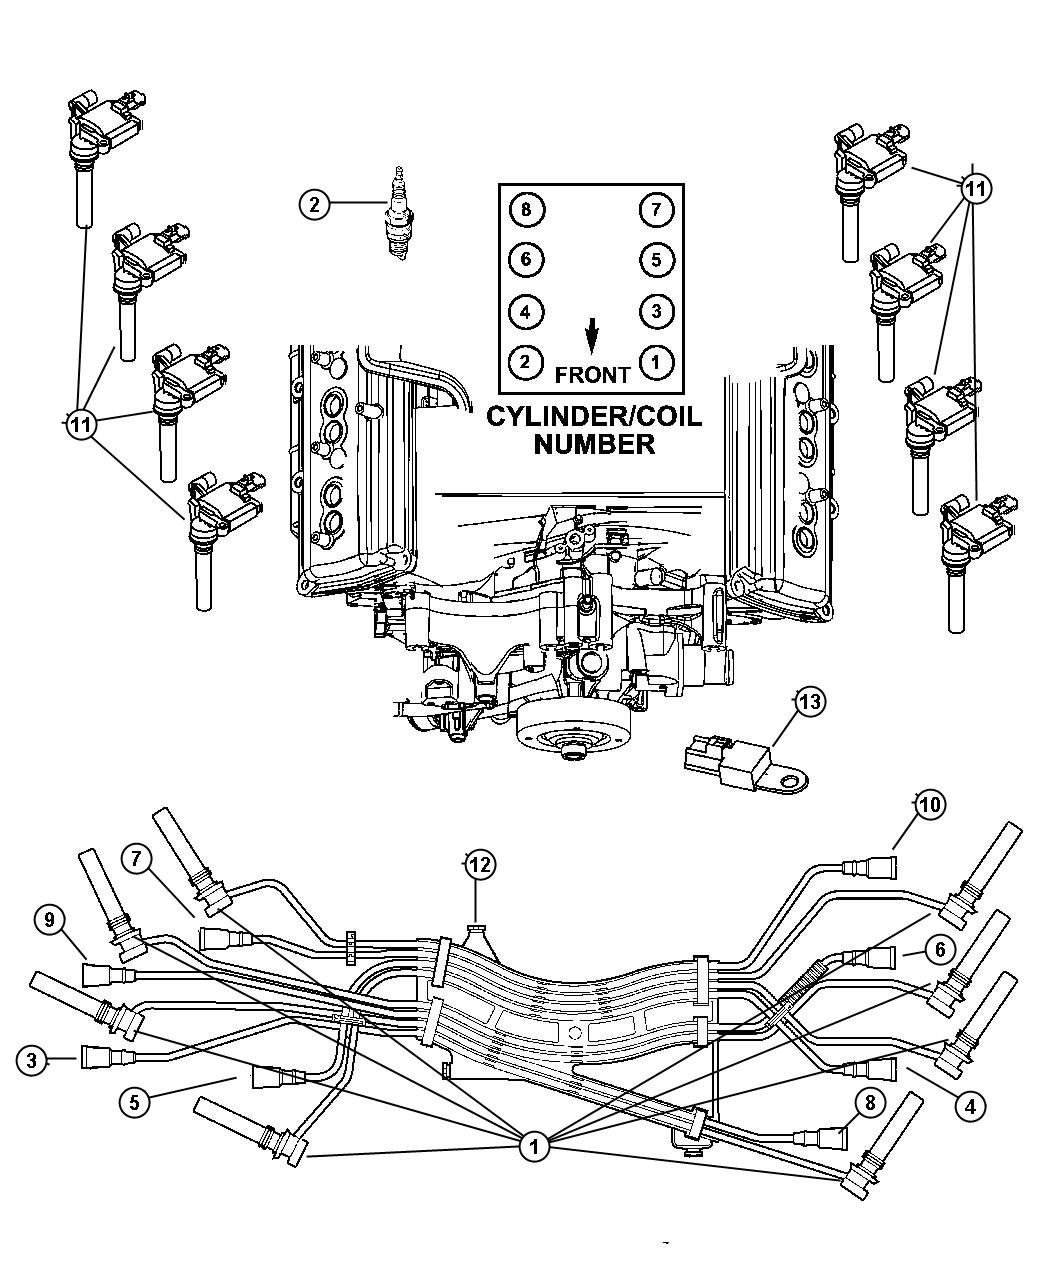 2000 Dodge Durango Vacuum Line Diagram, 2000, Free Engine